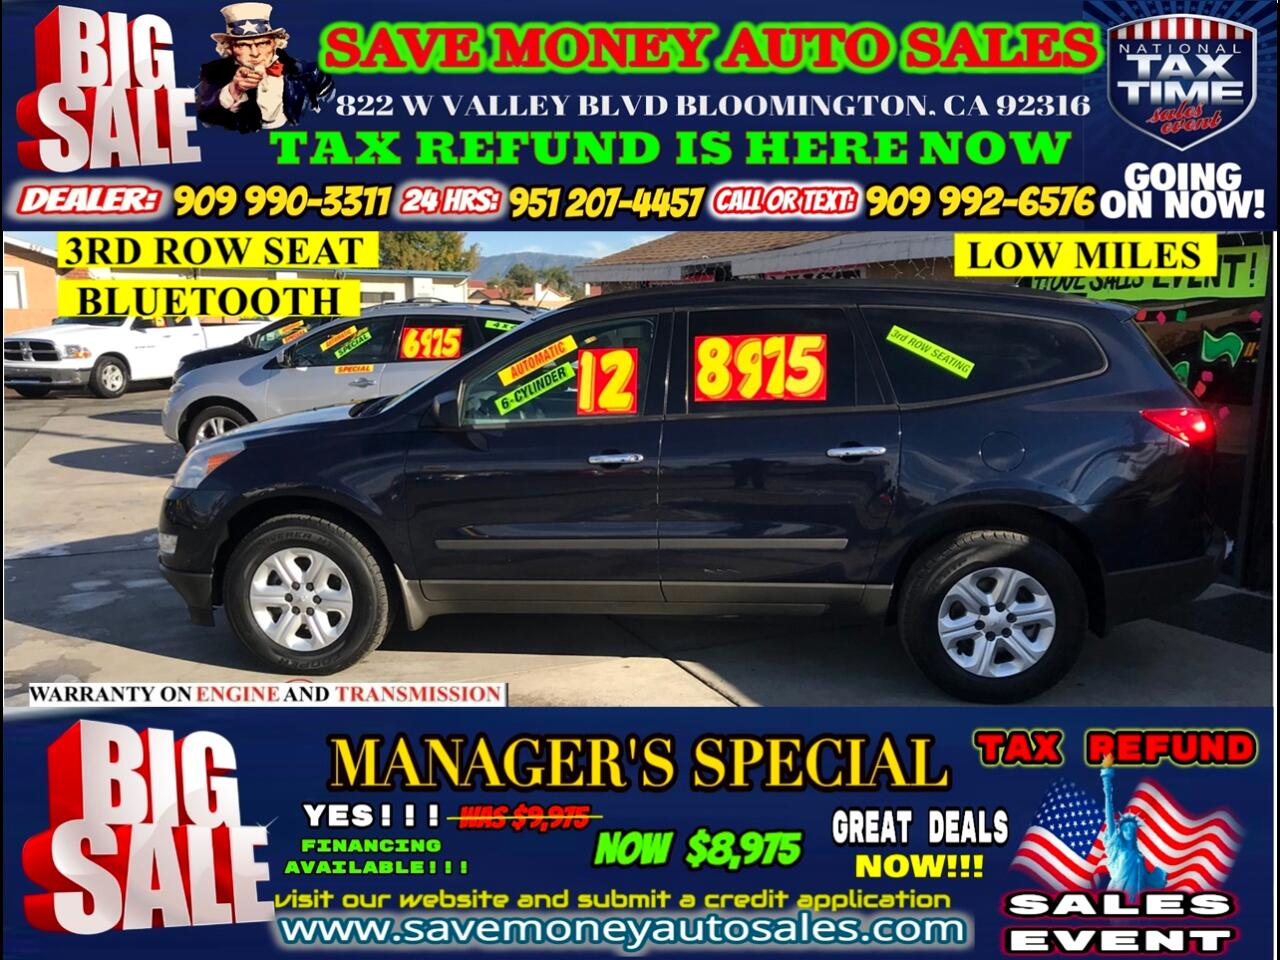 2012 Chevrolet Traverse LS FWD W/PDC>> 3RD ROW SEAT,BLUETOOTH AND MORE!!!!